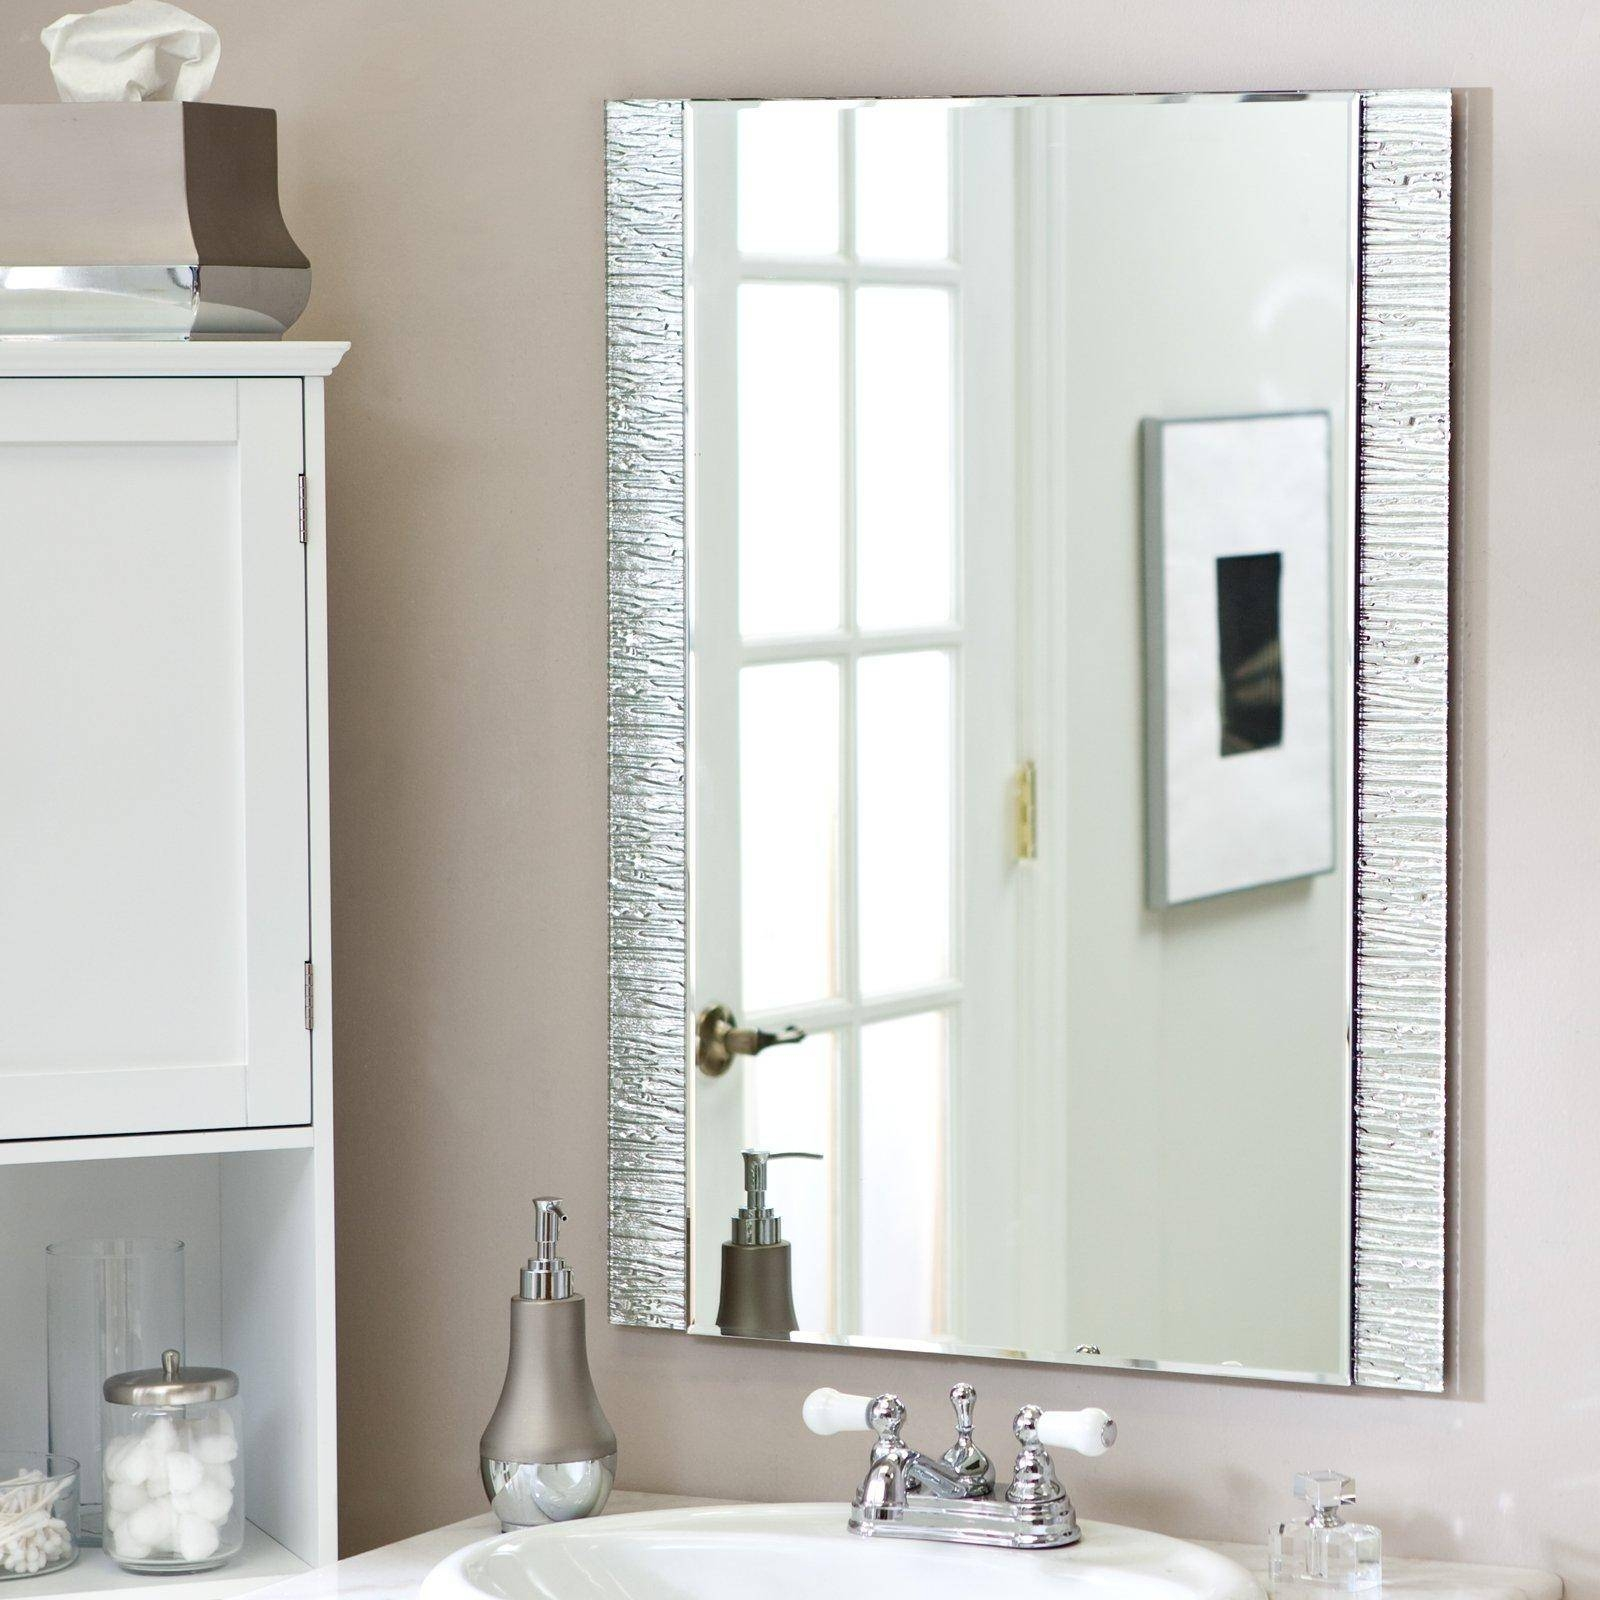 Mirror : Extra Large Leaning Floor Mirrors | Floor Decoration regarding Extra Large Full Length Mirrors (Image 13 of 15)